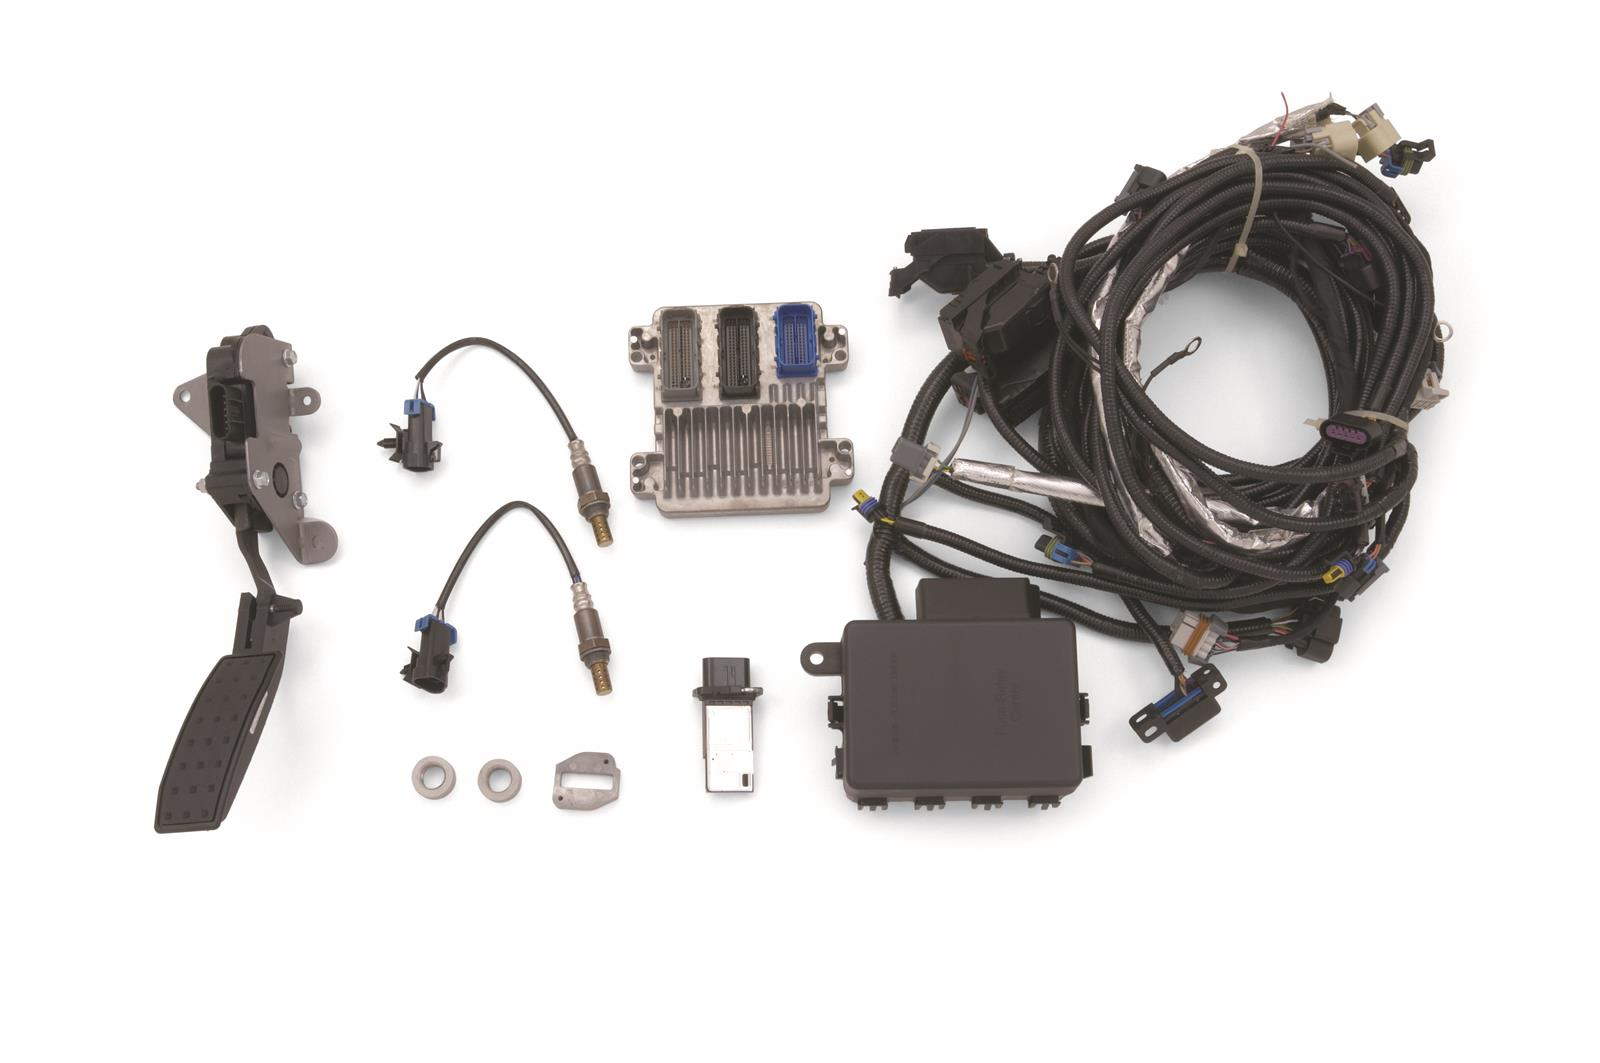 hight resolution of chevrolet performance ls7 engine controller kits 19354334 free shipping on orders over 99 at summit racing